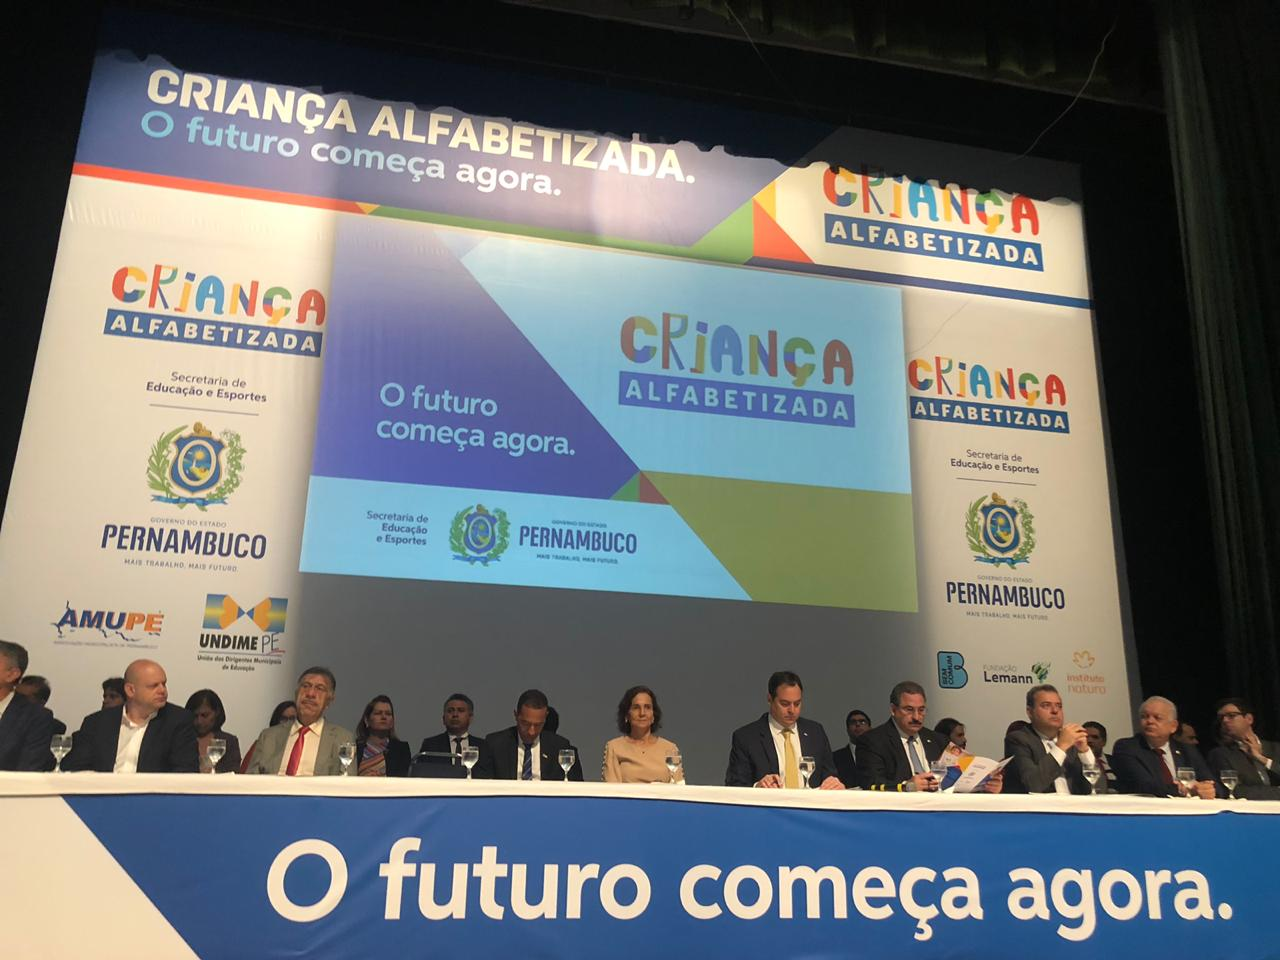 https://www.ceara.gov.br/wp-content/uploads/2019/06/WhatsApp-Image-2019-06-11-at-12.11.43.jpeg